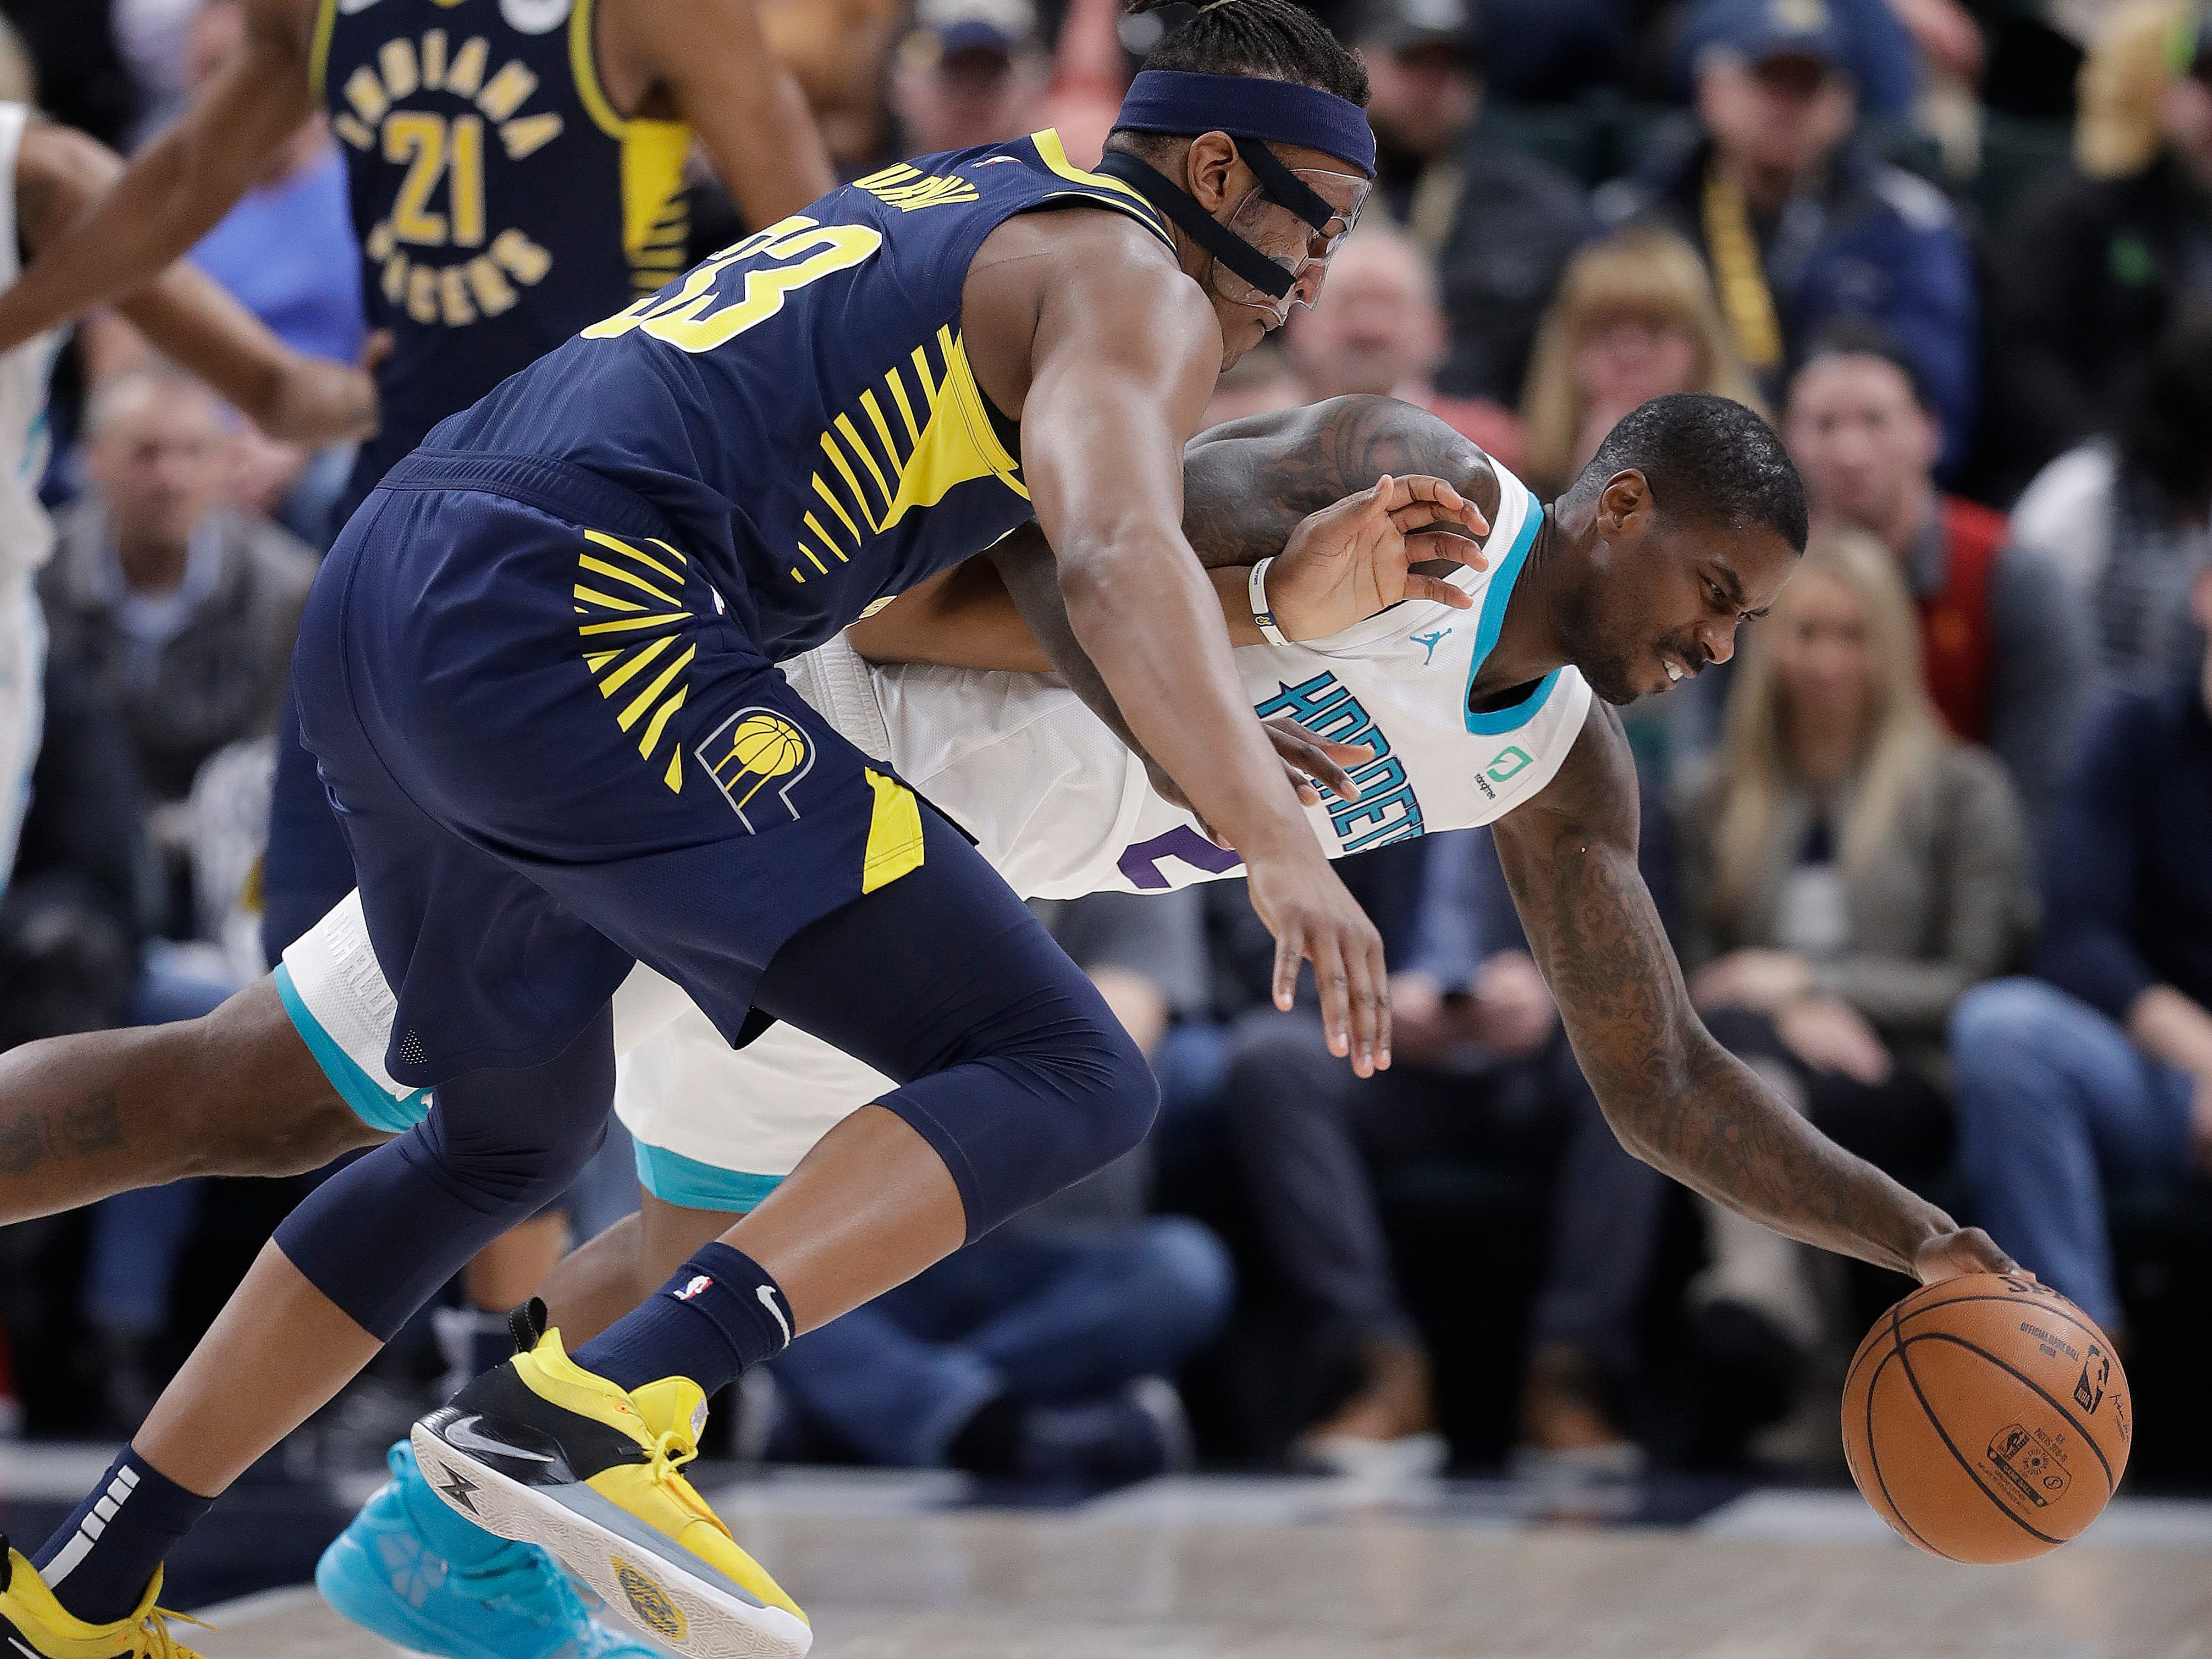 Indiana Pacers' Myles Turner, left, and Charlotte Hornets' Marvin Williams, right, battle for a loose ball during the first half of an NBA basketball game, Monday, Feb. 11, 2019, in Indianapolis.